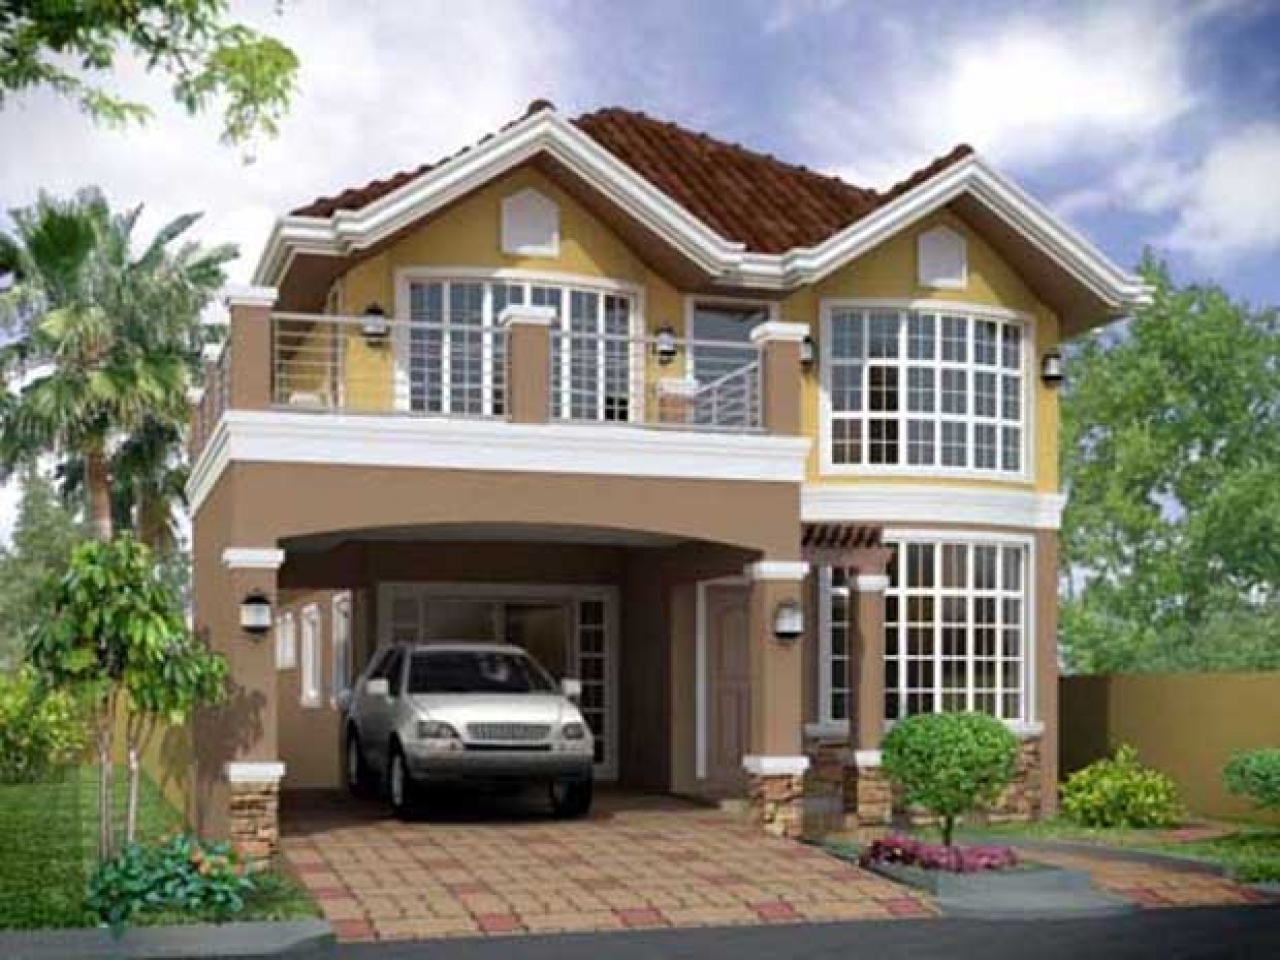 ultra modern small house plans small home house design lrg d2f625ca185d7d76 - View Small Vertical House Design Gif